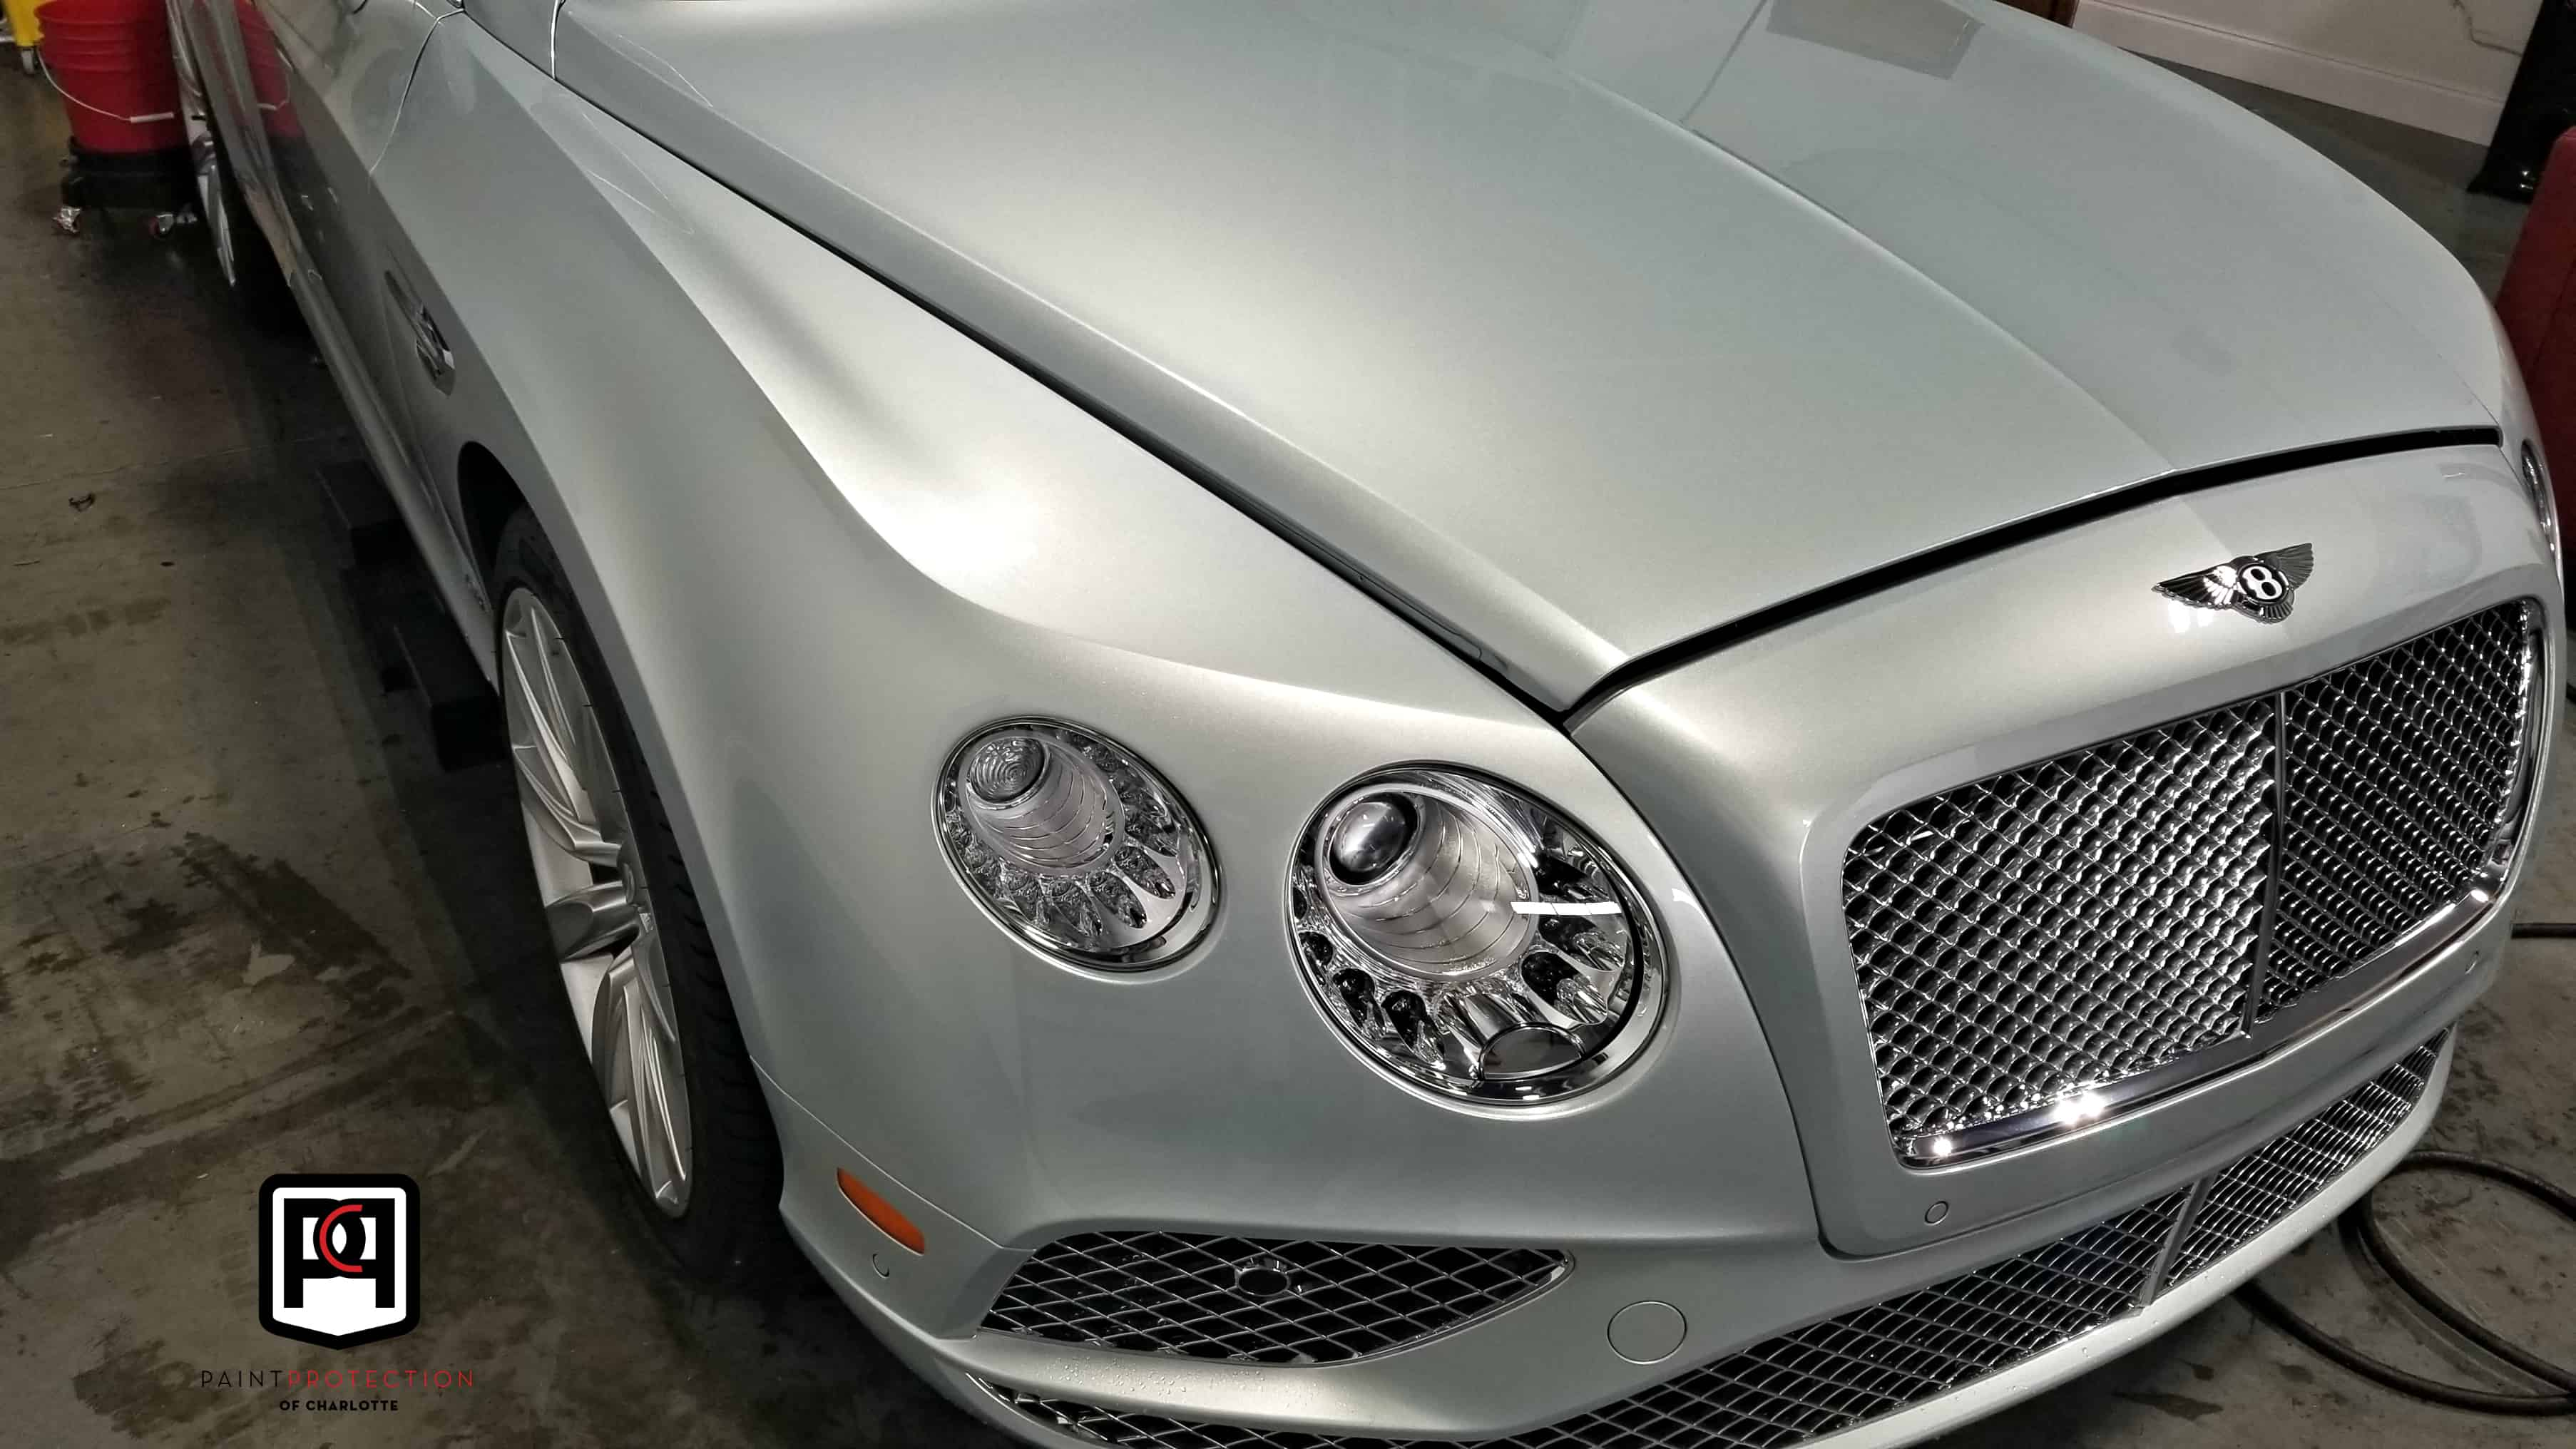 Bentley ppf